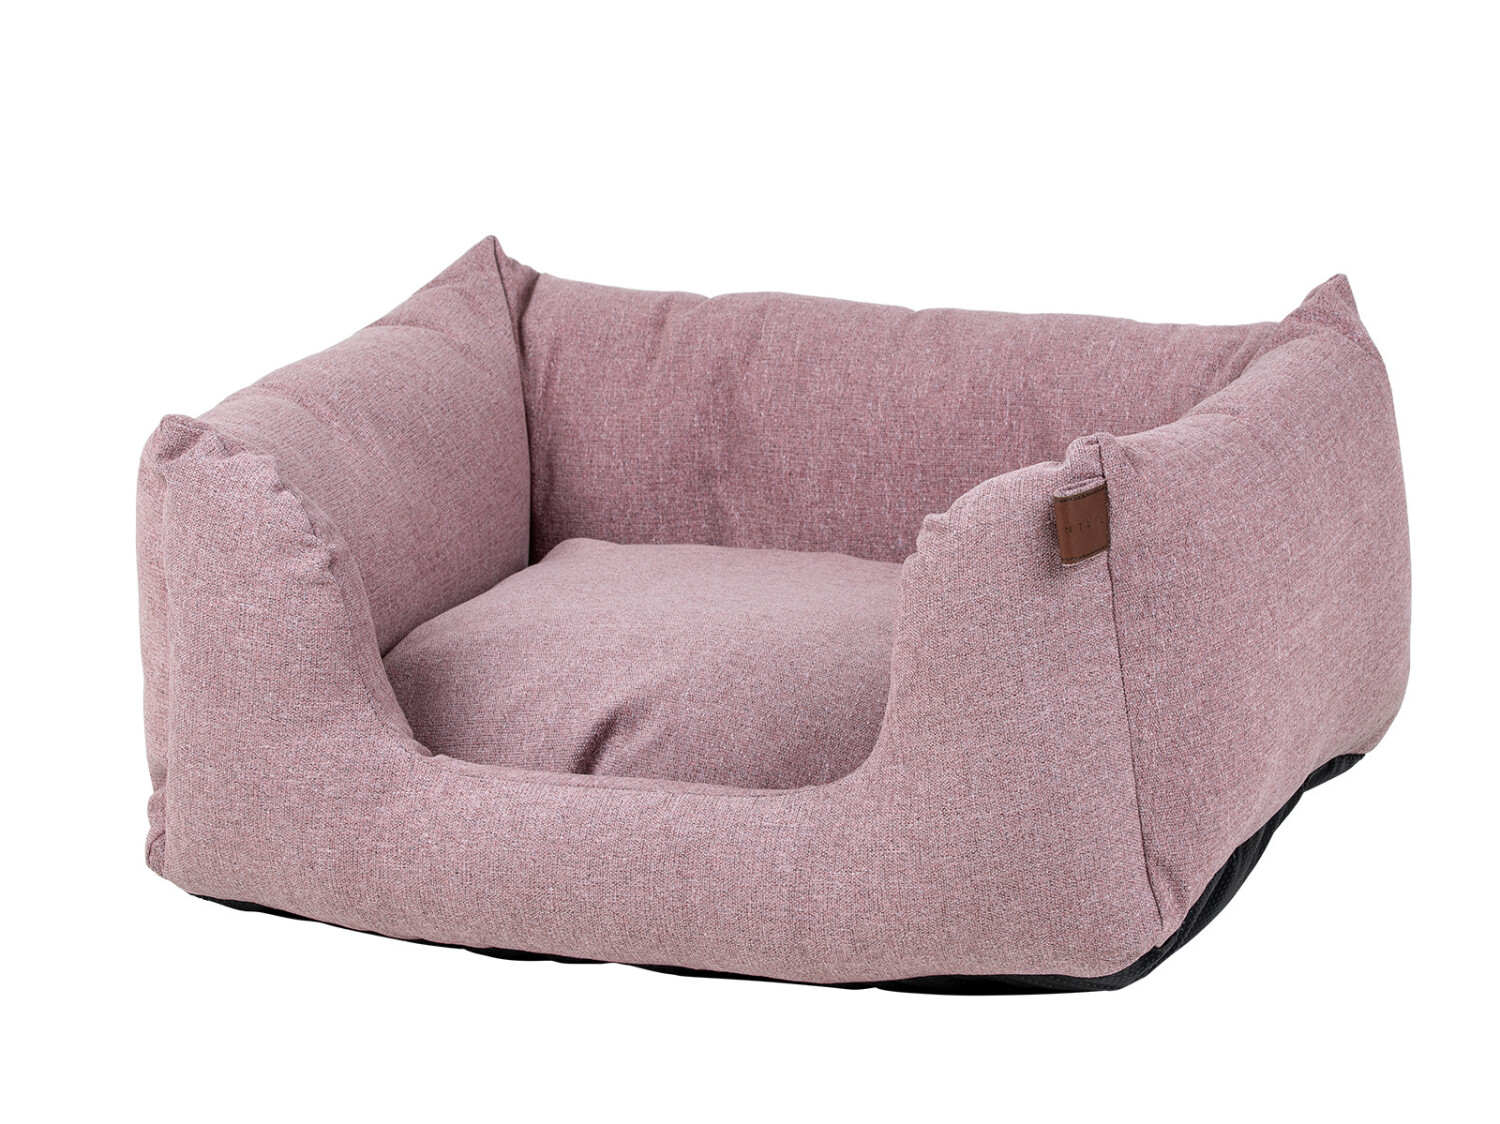 Hondenmand Fantail Snooze 60 x 50 cm Iconic pink